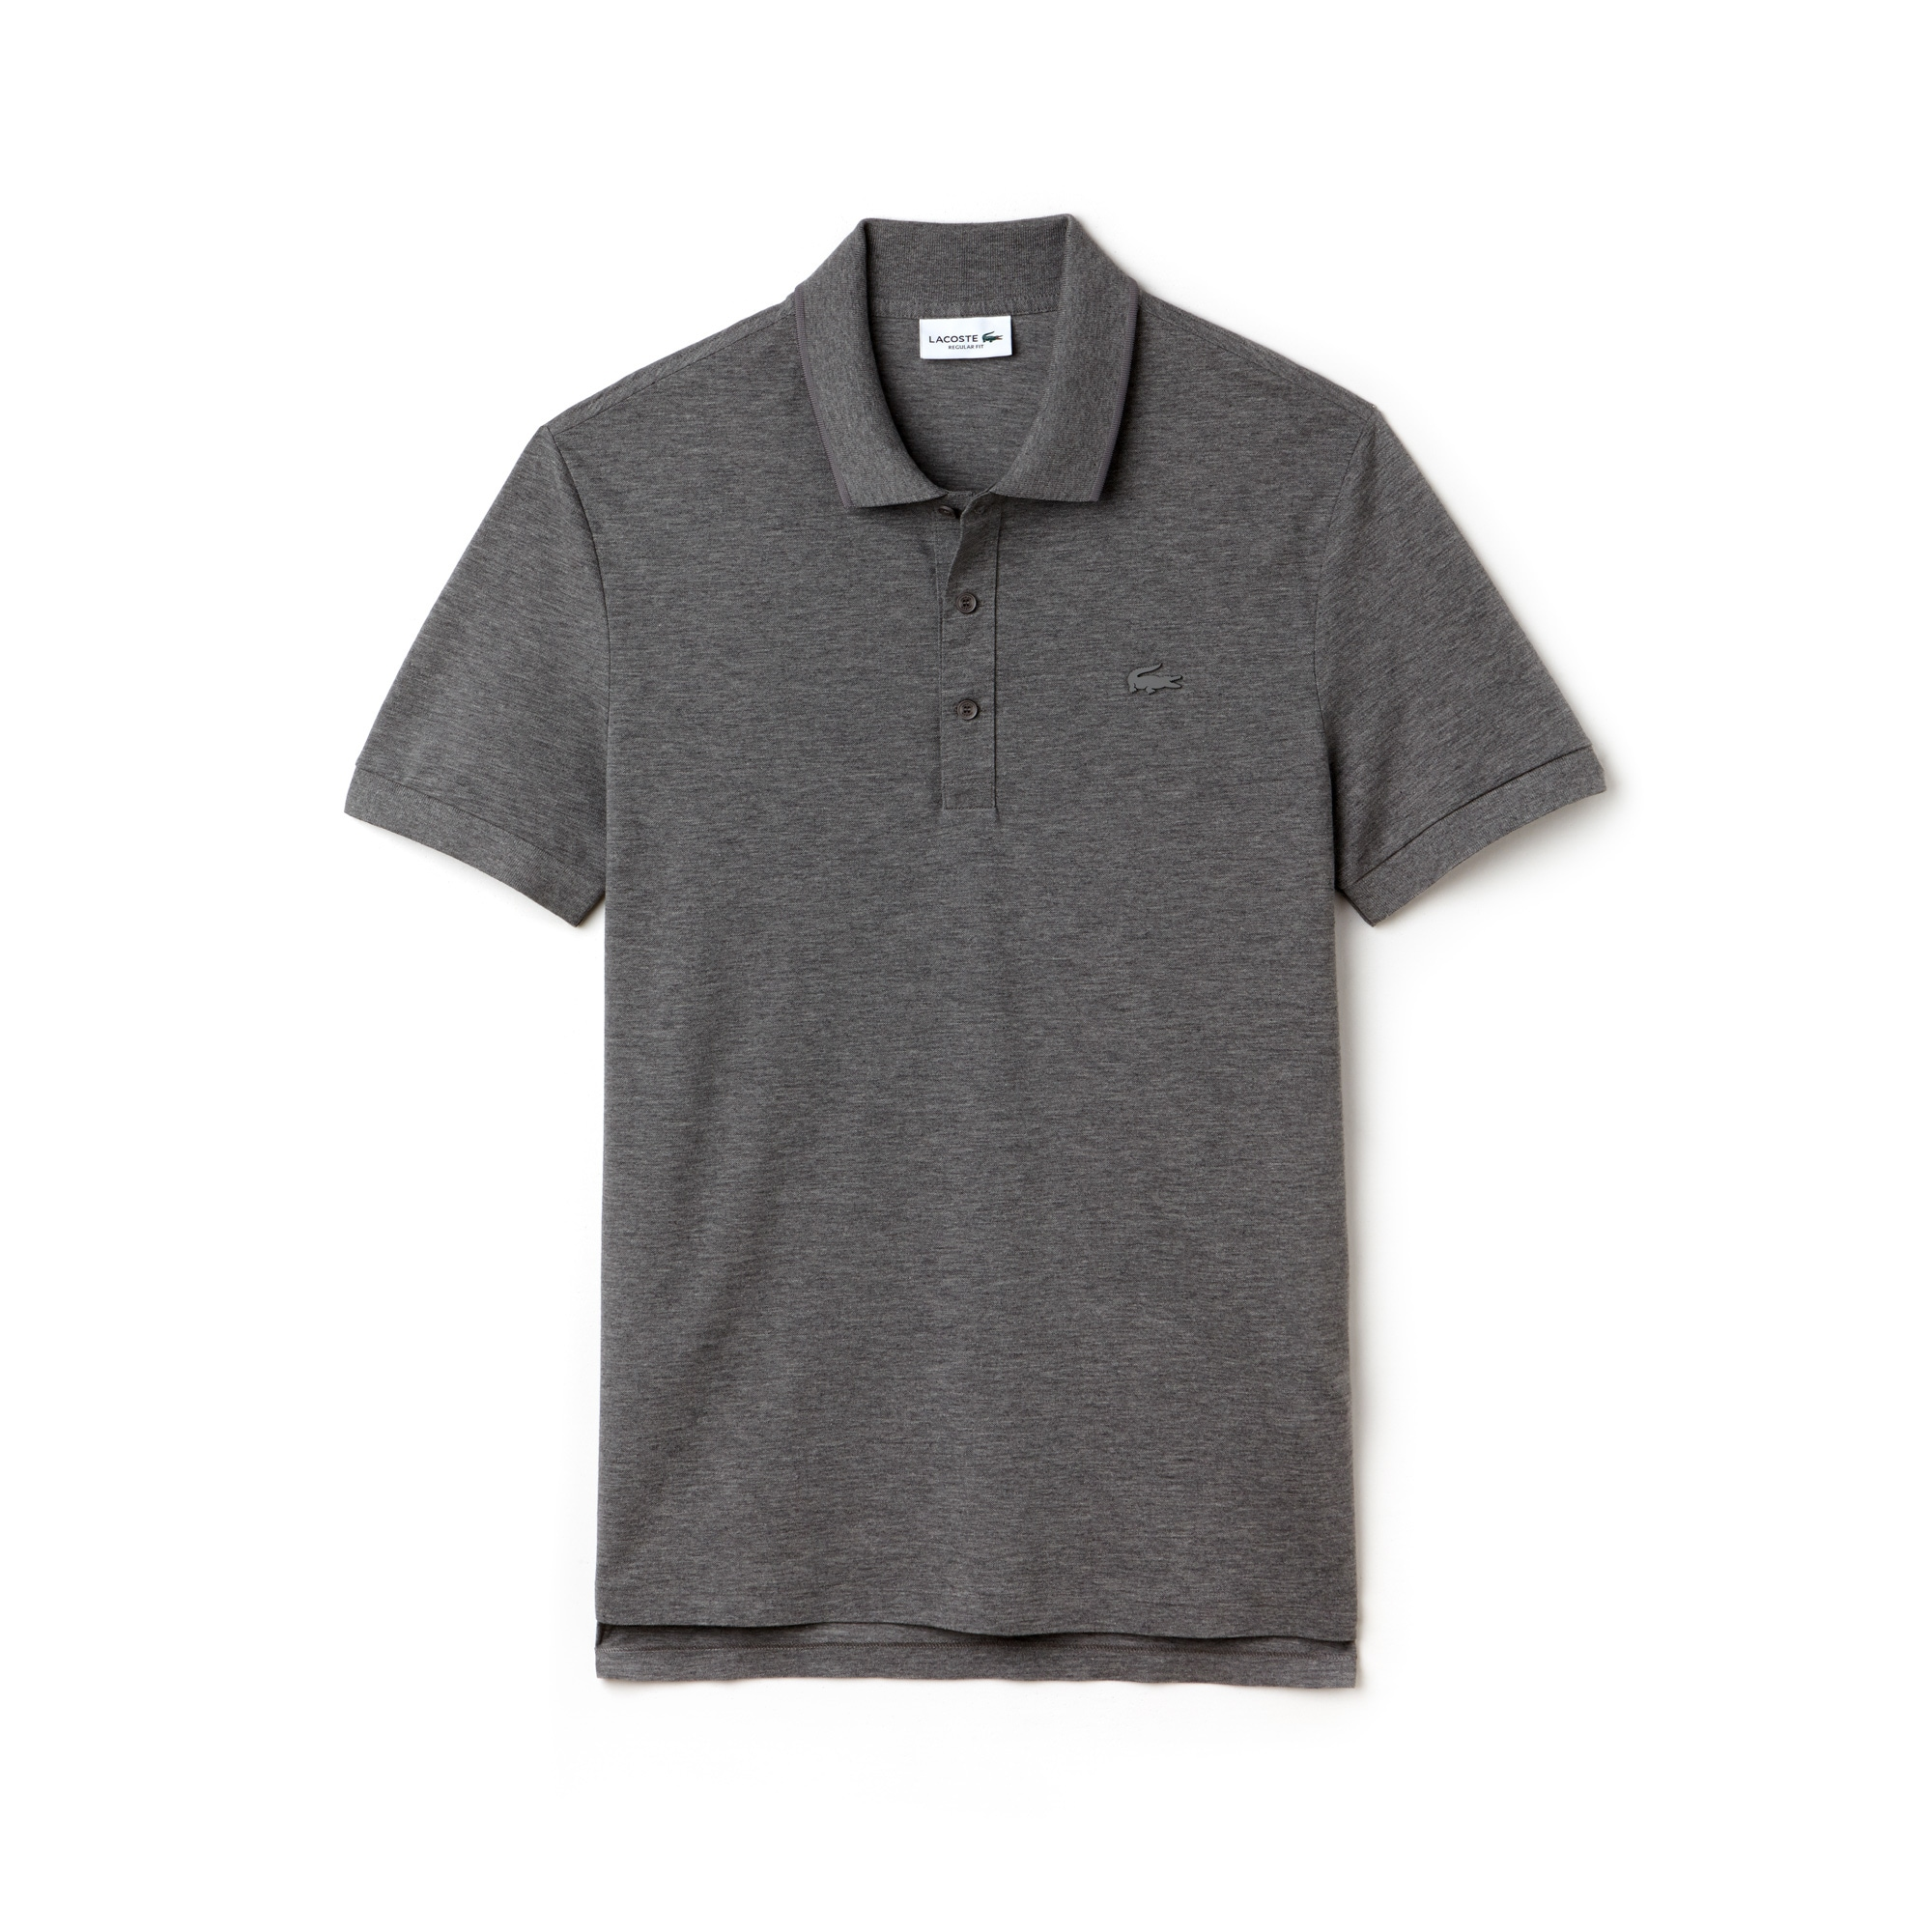 Lacoste MOTION-polo heren regular fit pima-katoenpiqué